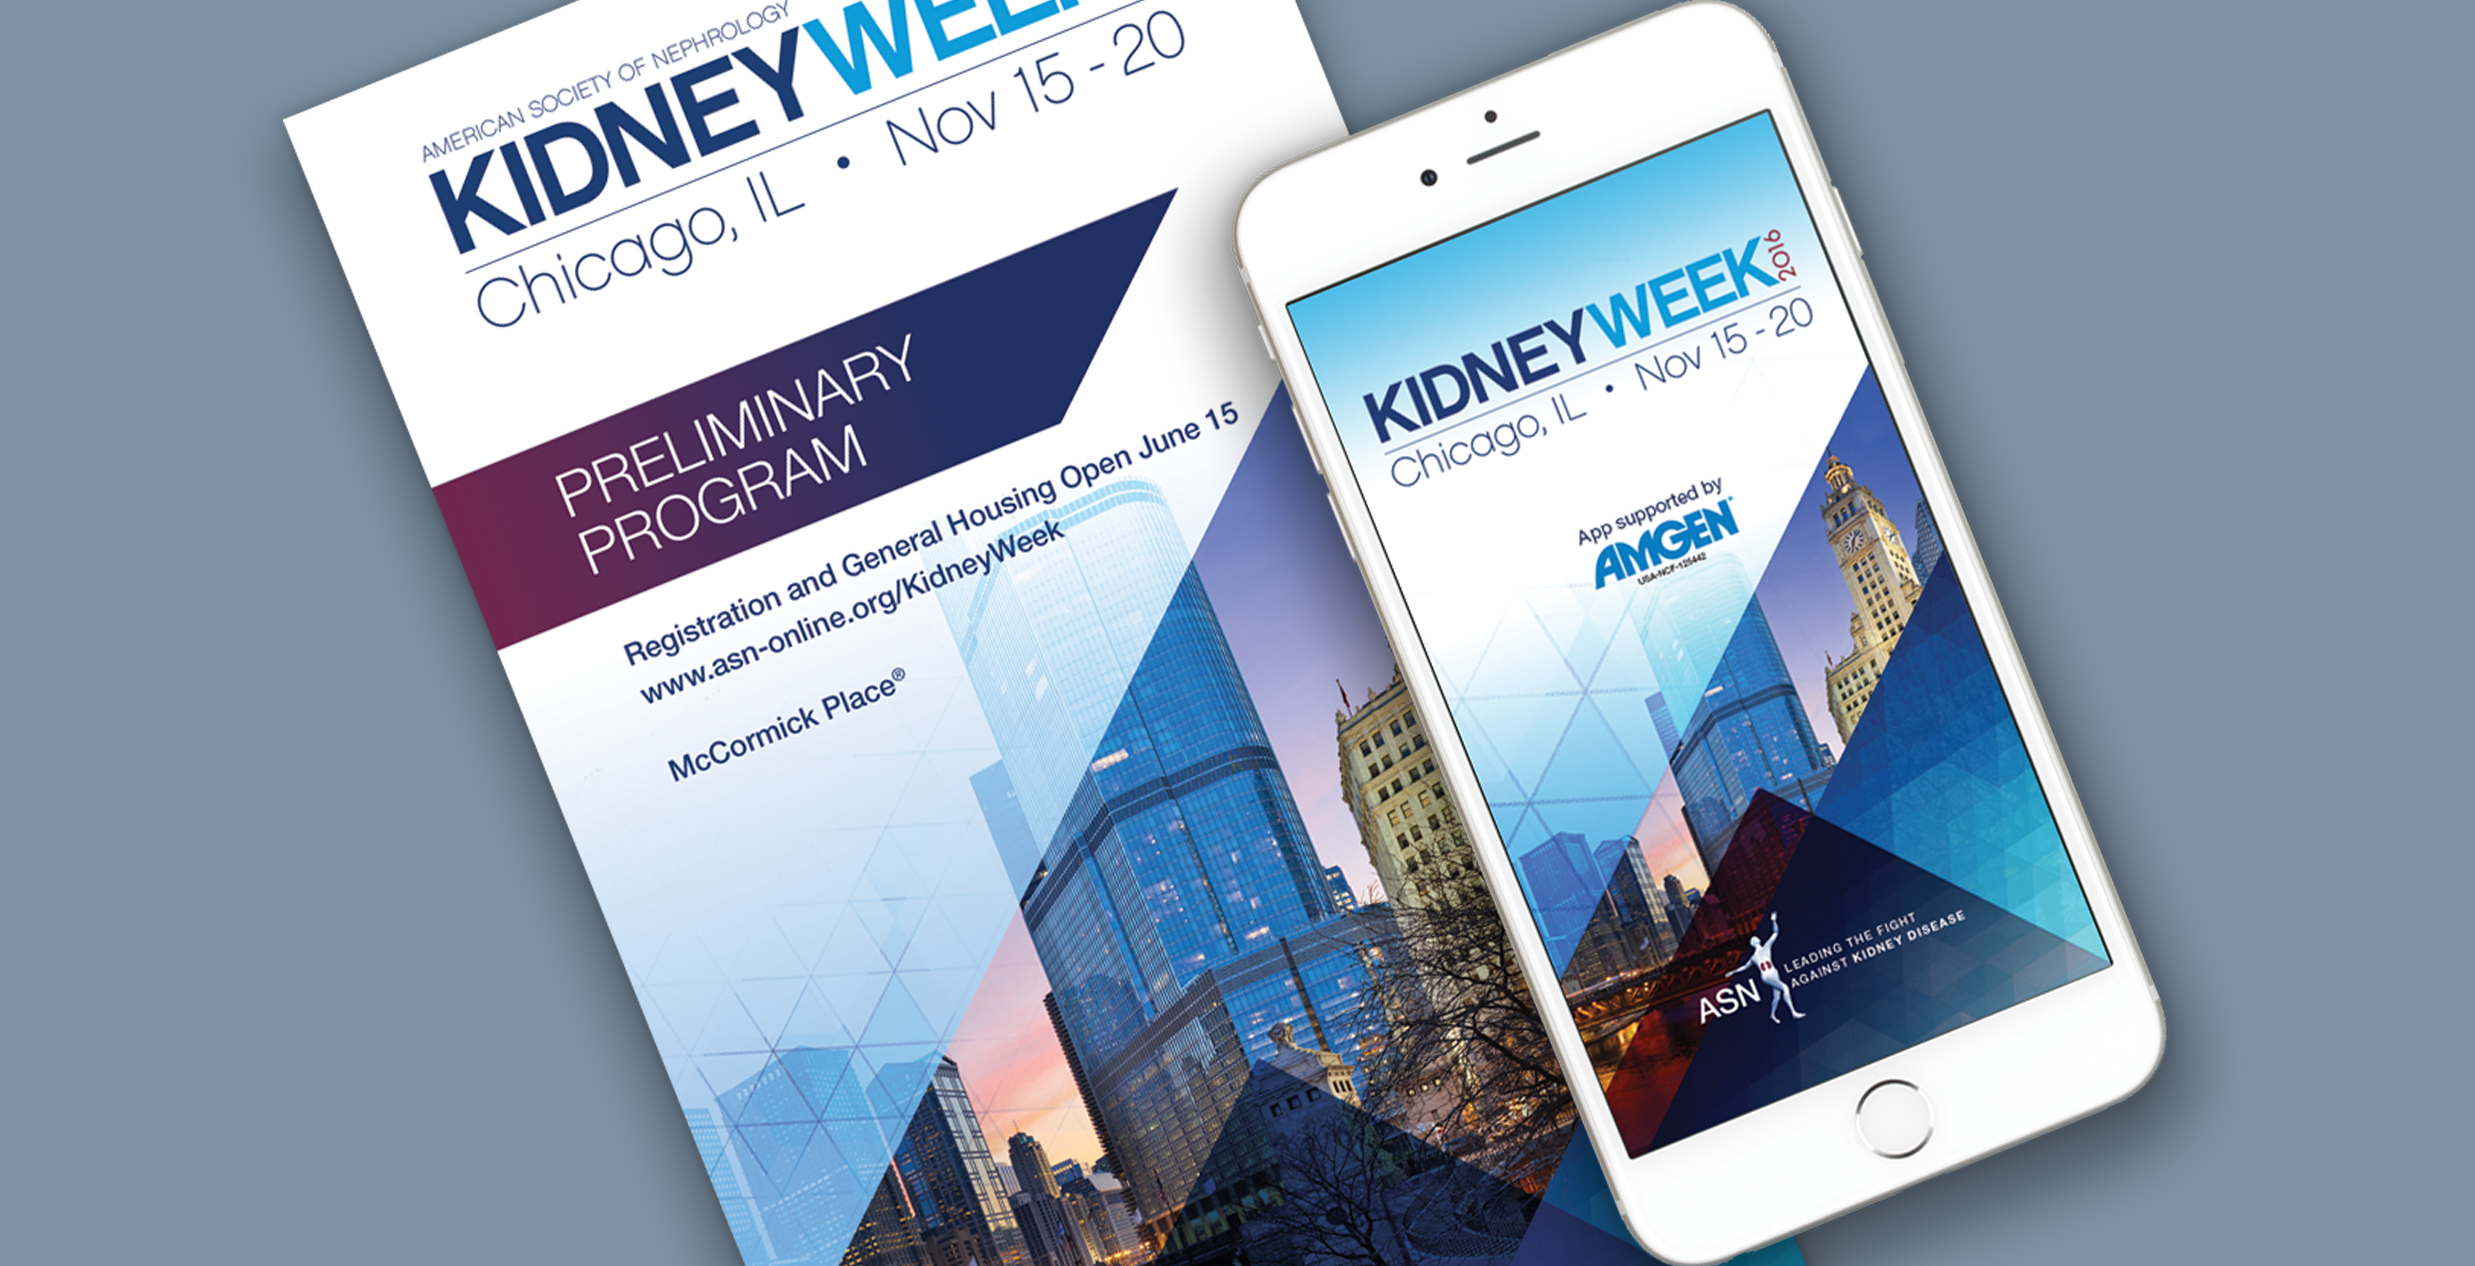 More than 13,000 kidney professionals from across the globe gather every year at Kidney Week. It is the world's premier nephrology meeting, providing participants exciting and challenging opportunities to exchange knowledge, learn the latest scientific and medical advances, and listen to engaging and provocative discussions with leading experts in the field.